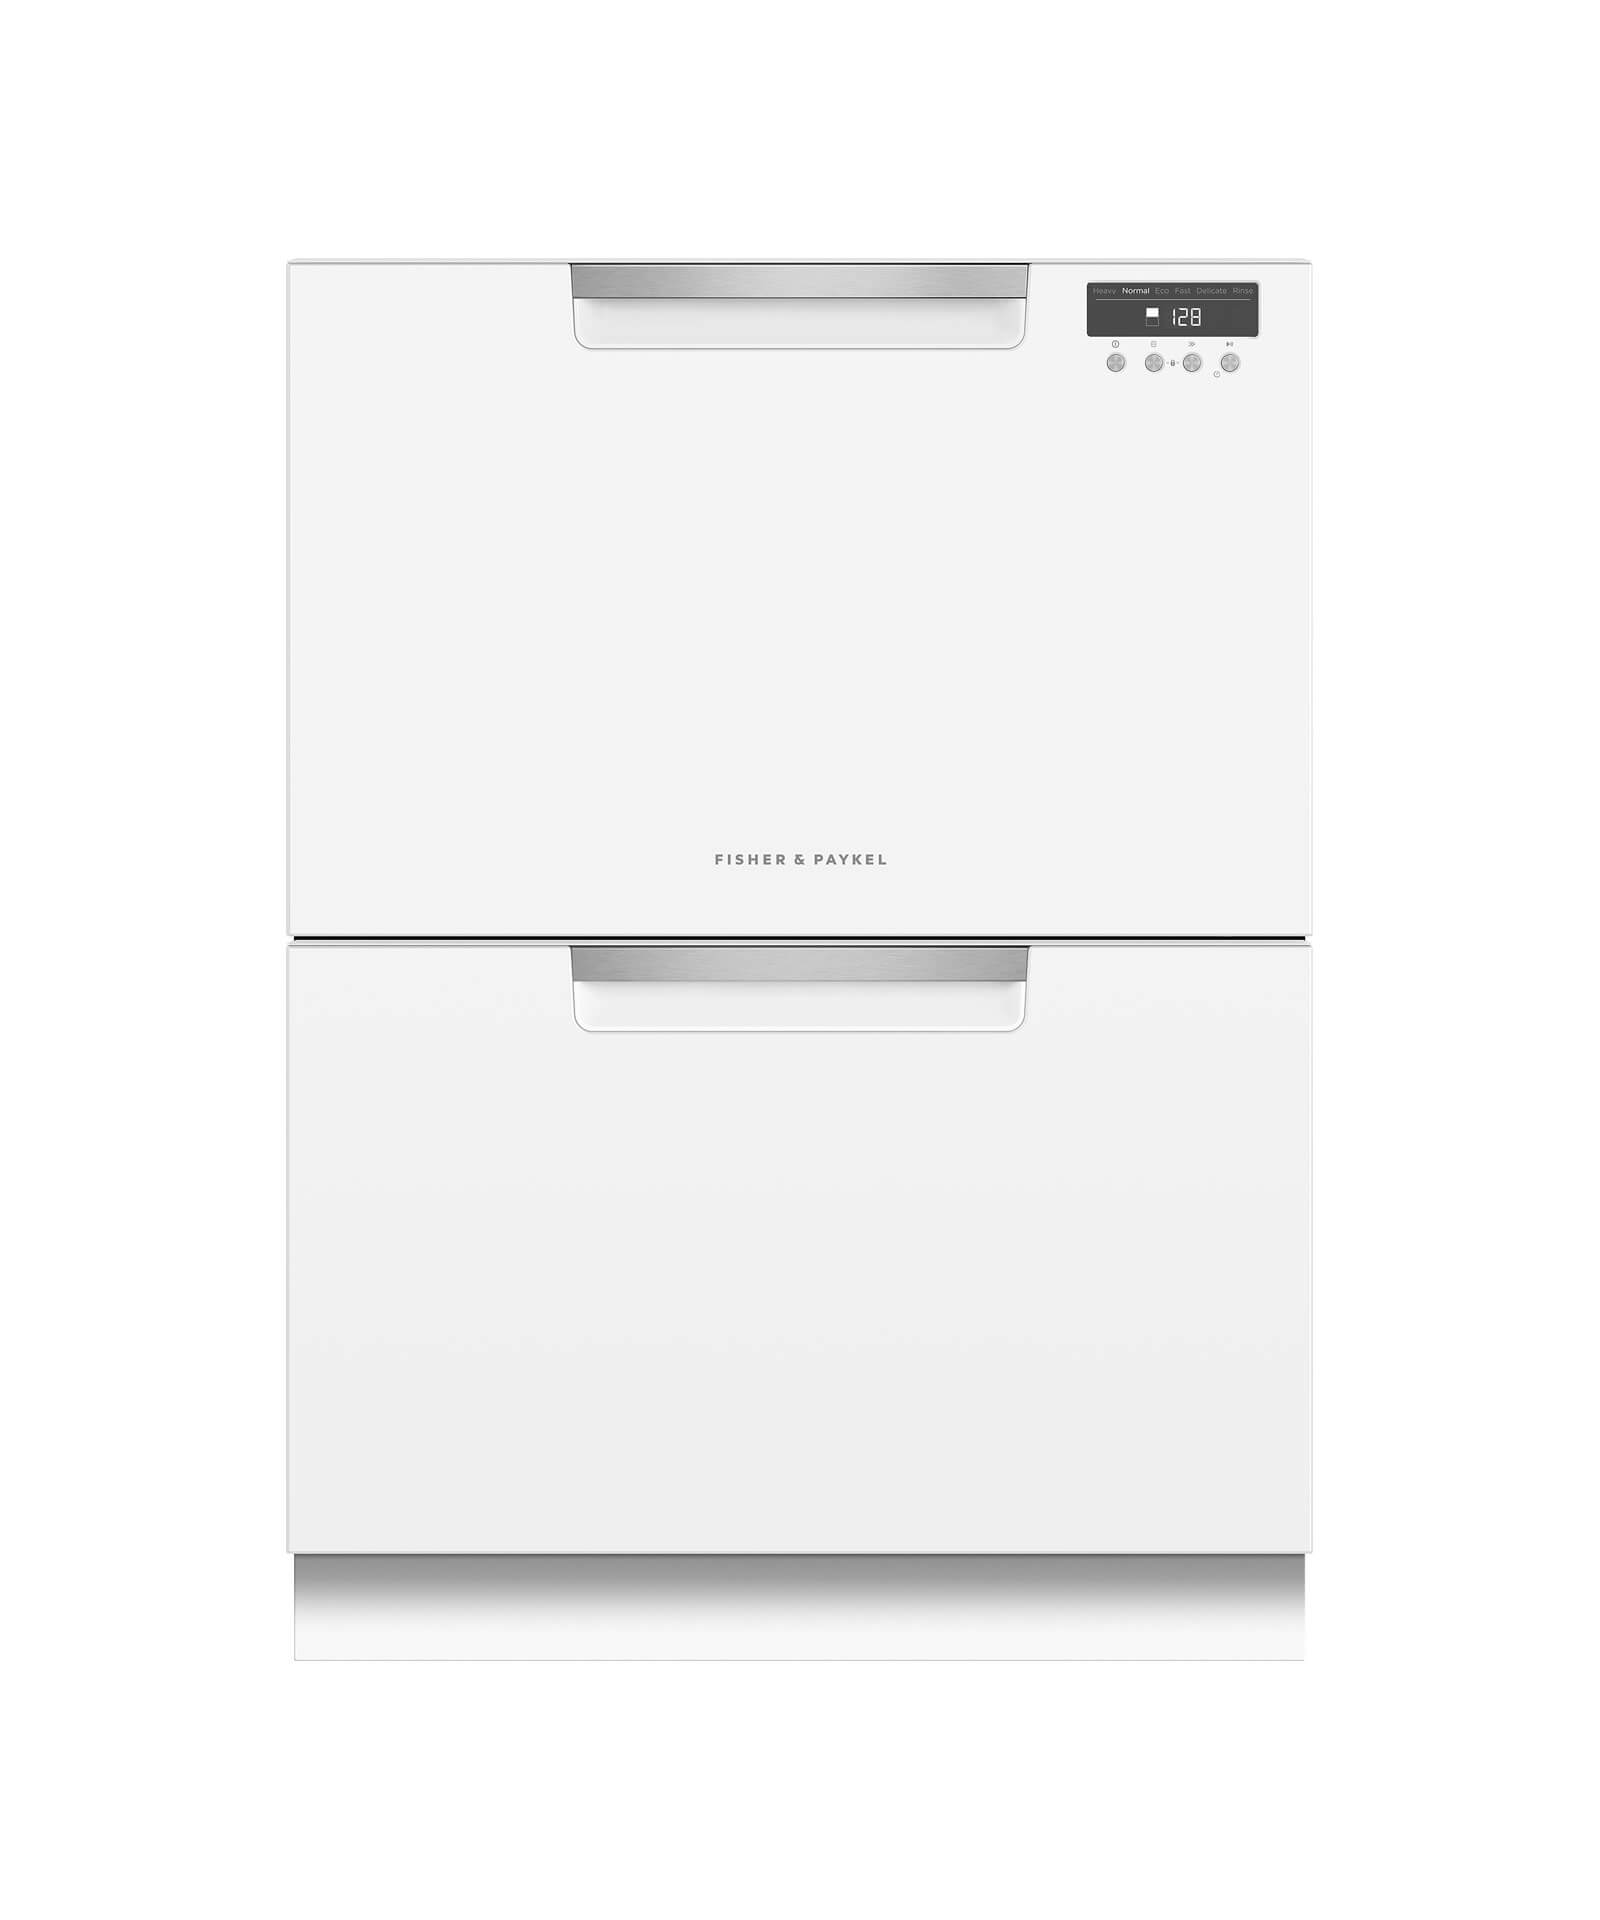 Double DishDrawer™ Dishwasher, 14 Place Settings